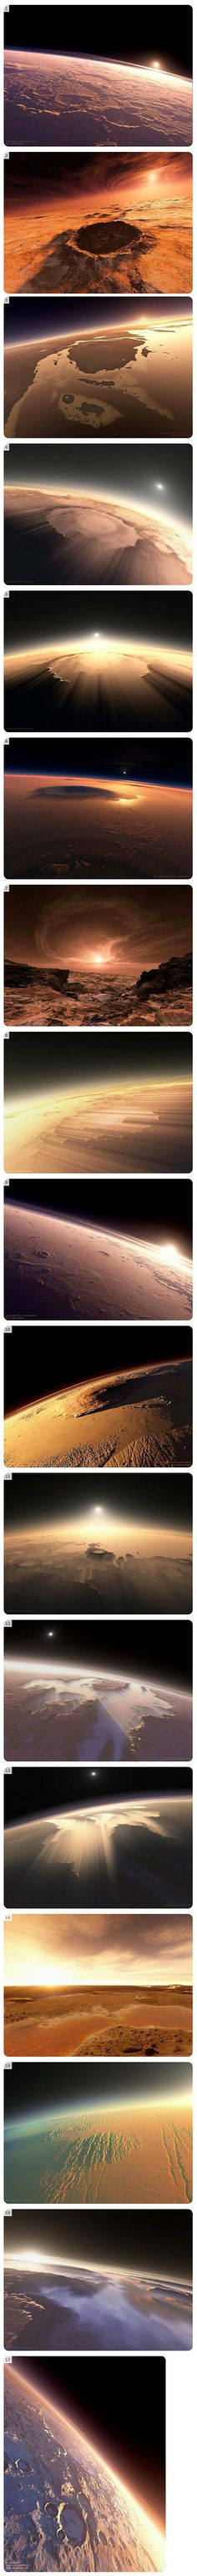 Mars is a terrestrial planet with a thin atmosphere, having surface features reminiscent both of the impact craters of the Moon and the volcanoes, valleys, deserts, and polar ice caps of Earth. Here is what a sunrise would look like on The Red Planet.